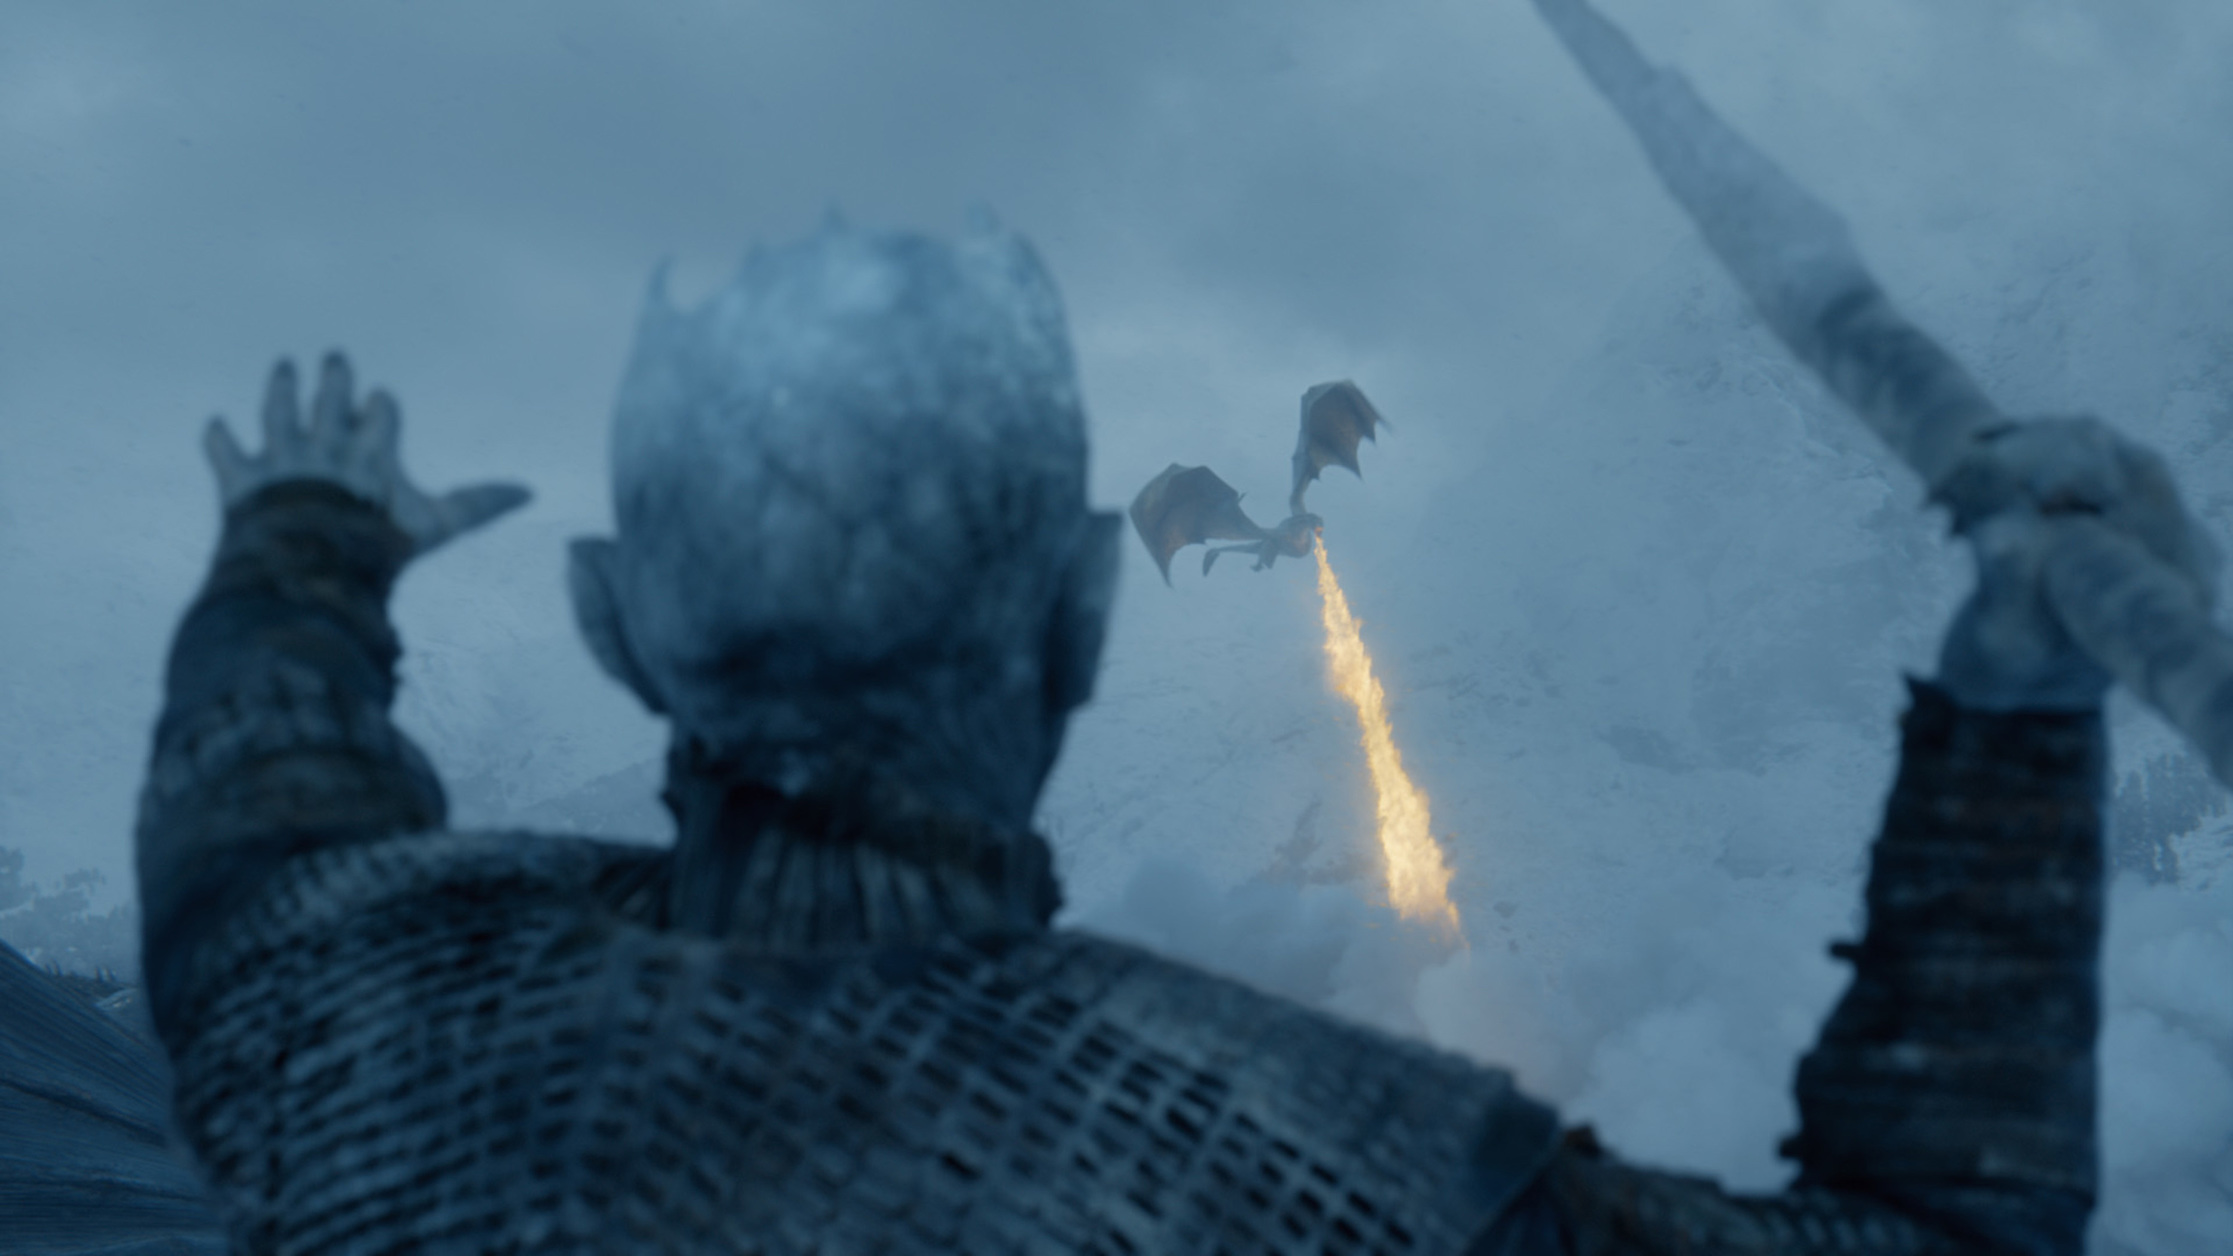 The Night King aims an Ice Spear at the dragon Viserion north of the wall